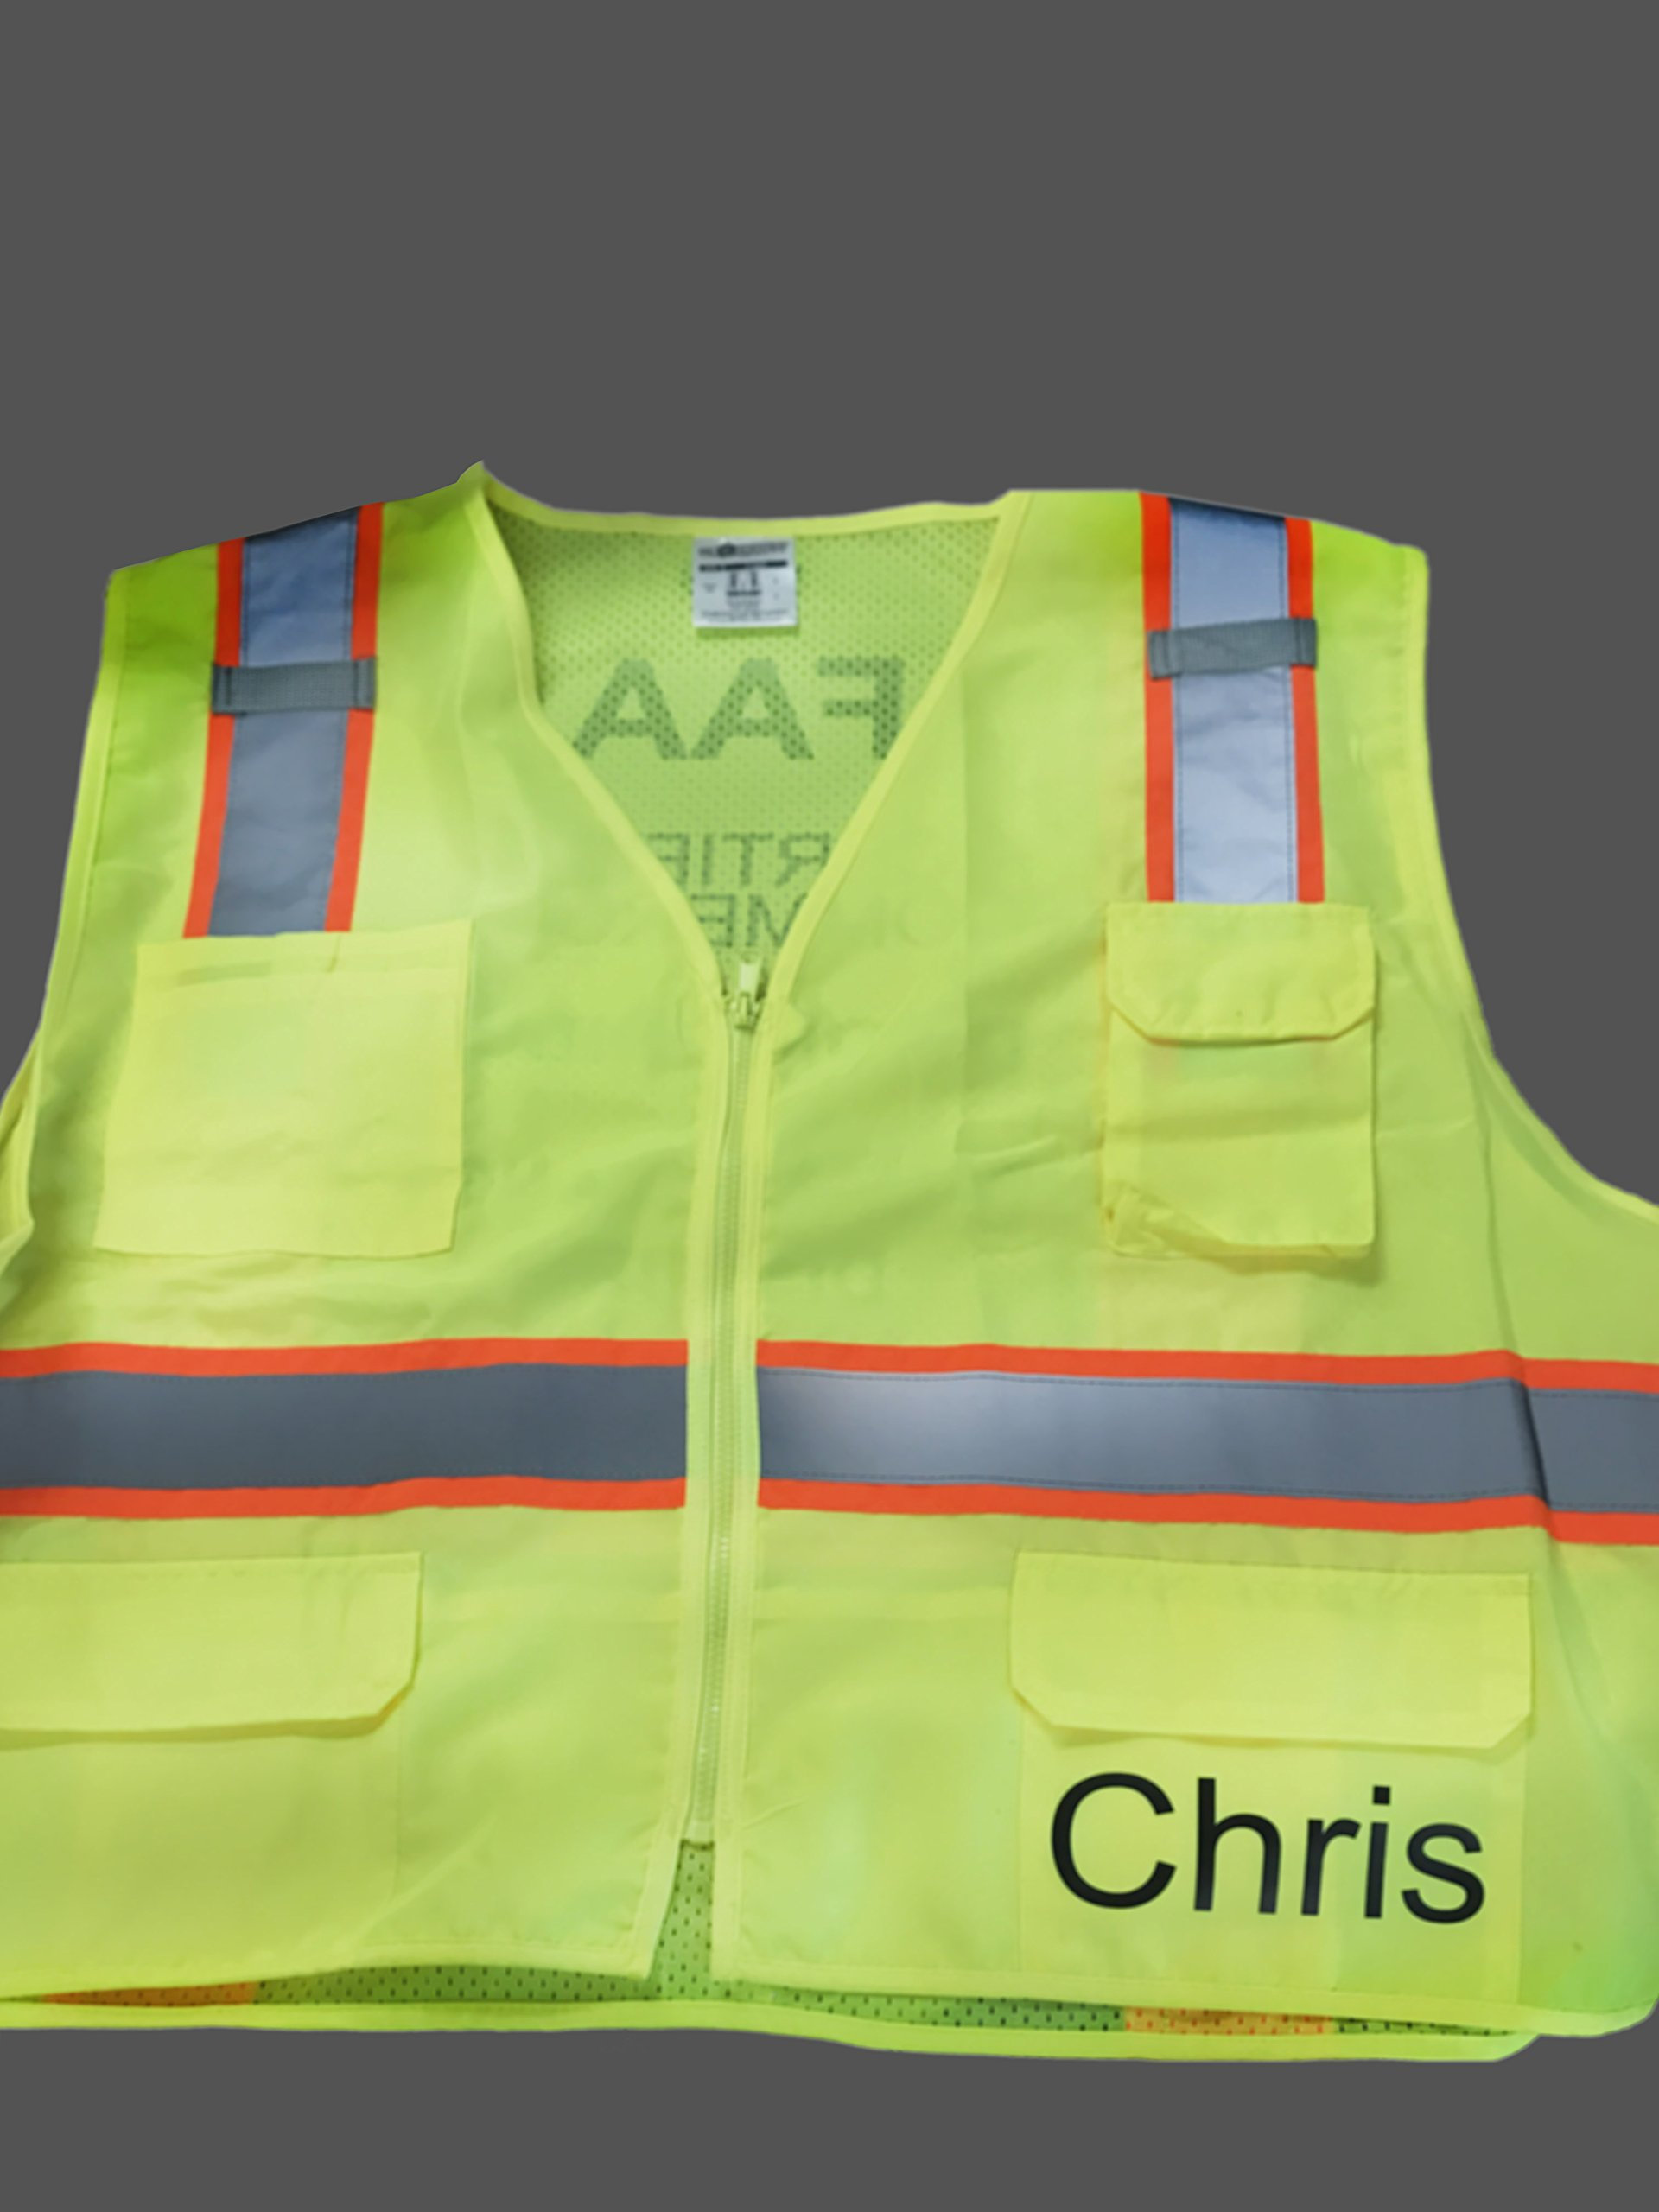 Custom Safety Reflective Mesh Vest with Zipper - Personalized Drone Pilot Vest by Safety Miracle (Image #8)